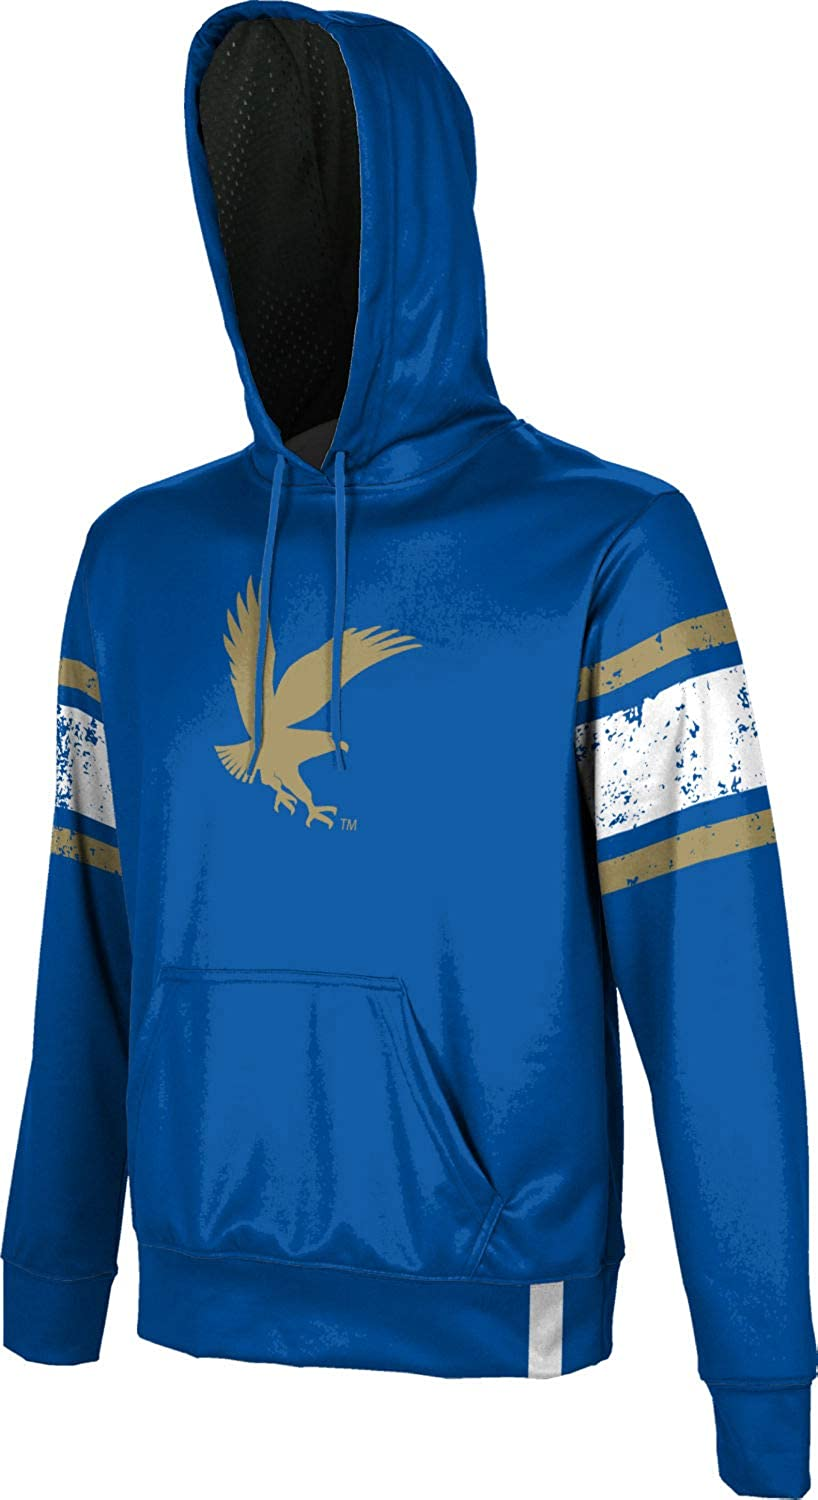 End Zone ProSphere Embry-Riddle Aeronautical University Worldwide Boys Pullover Hoodie